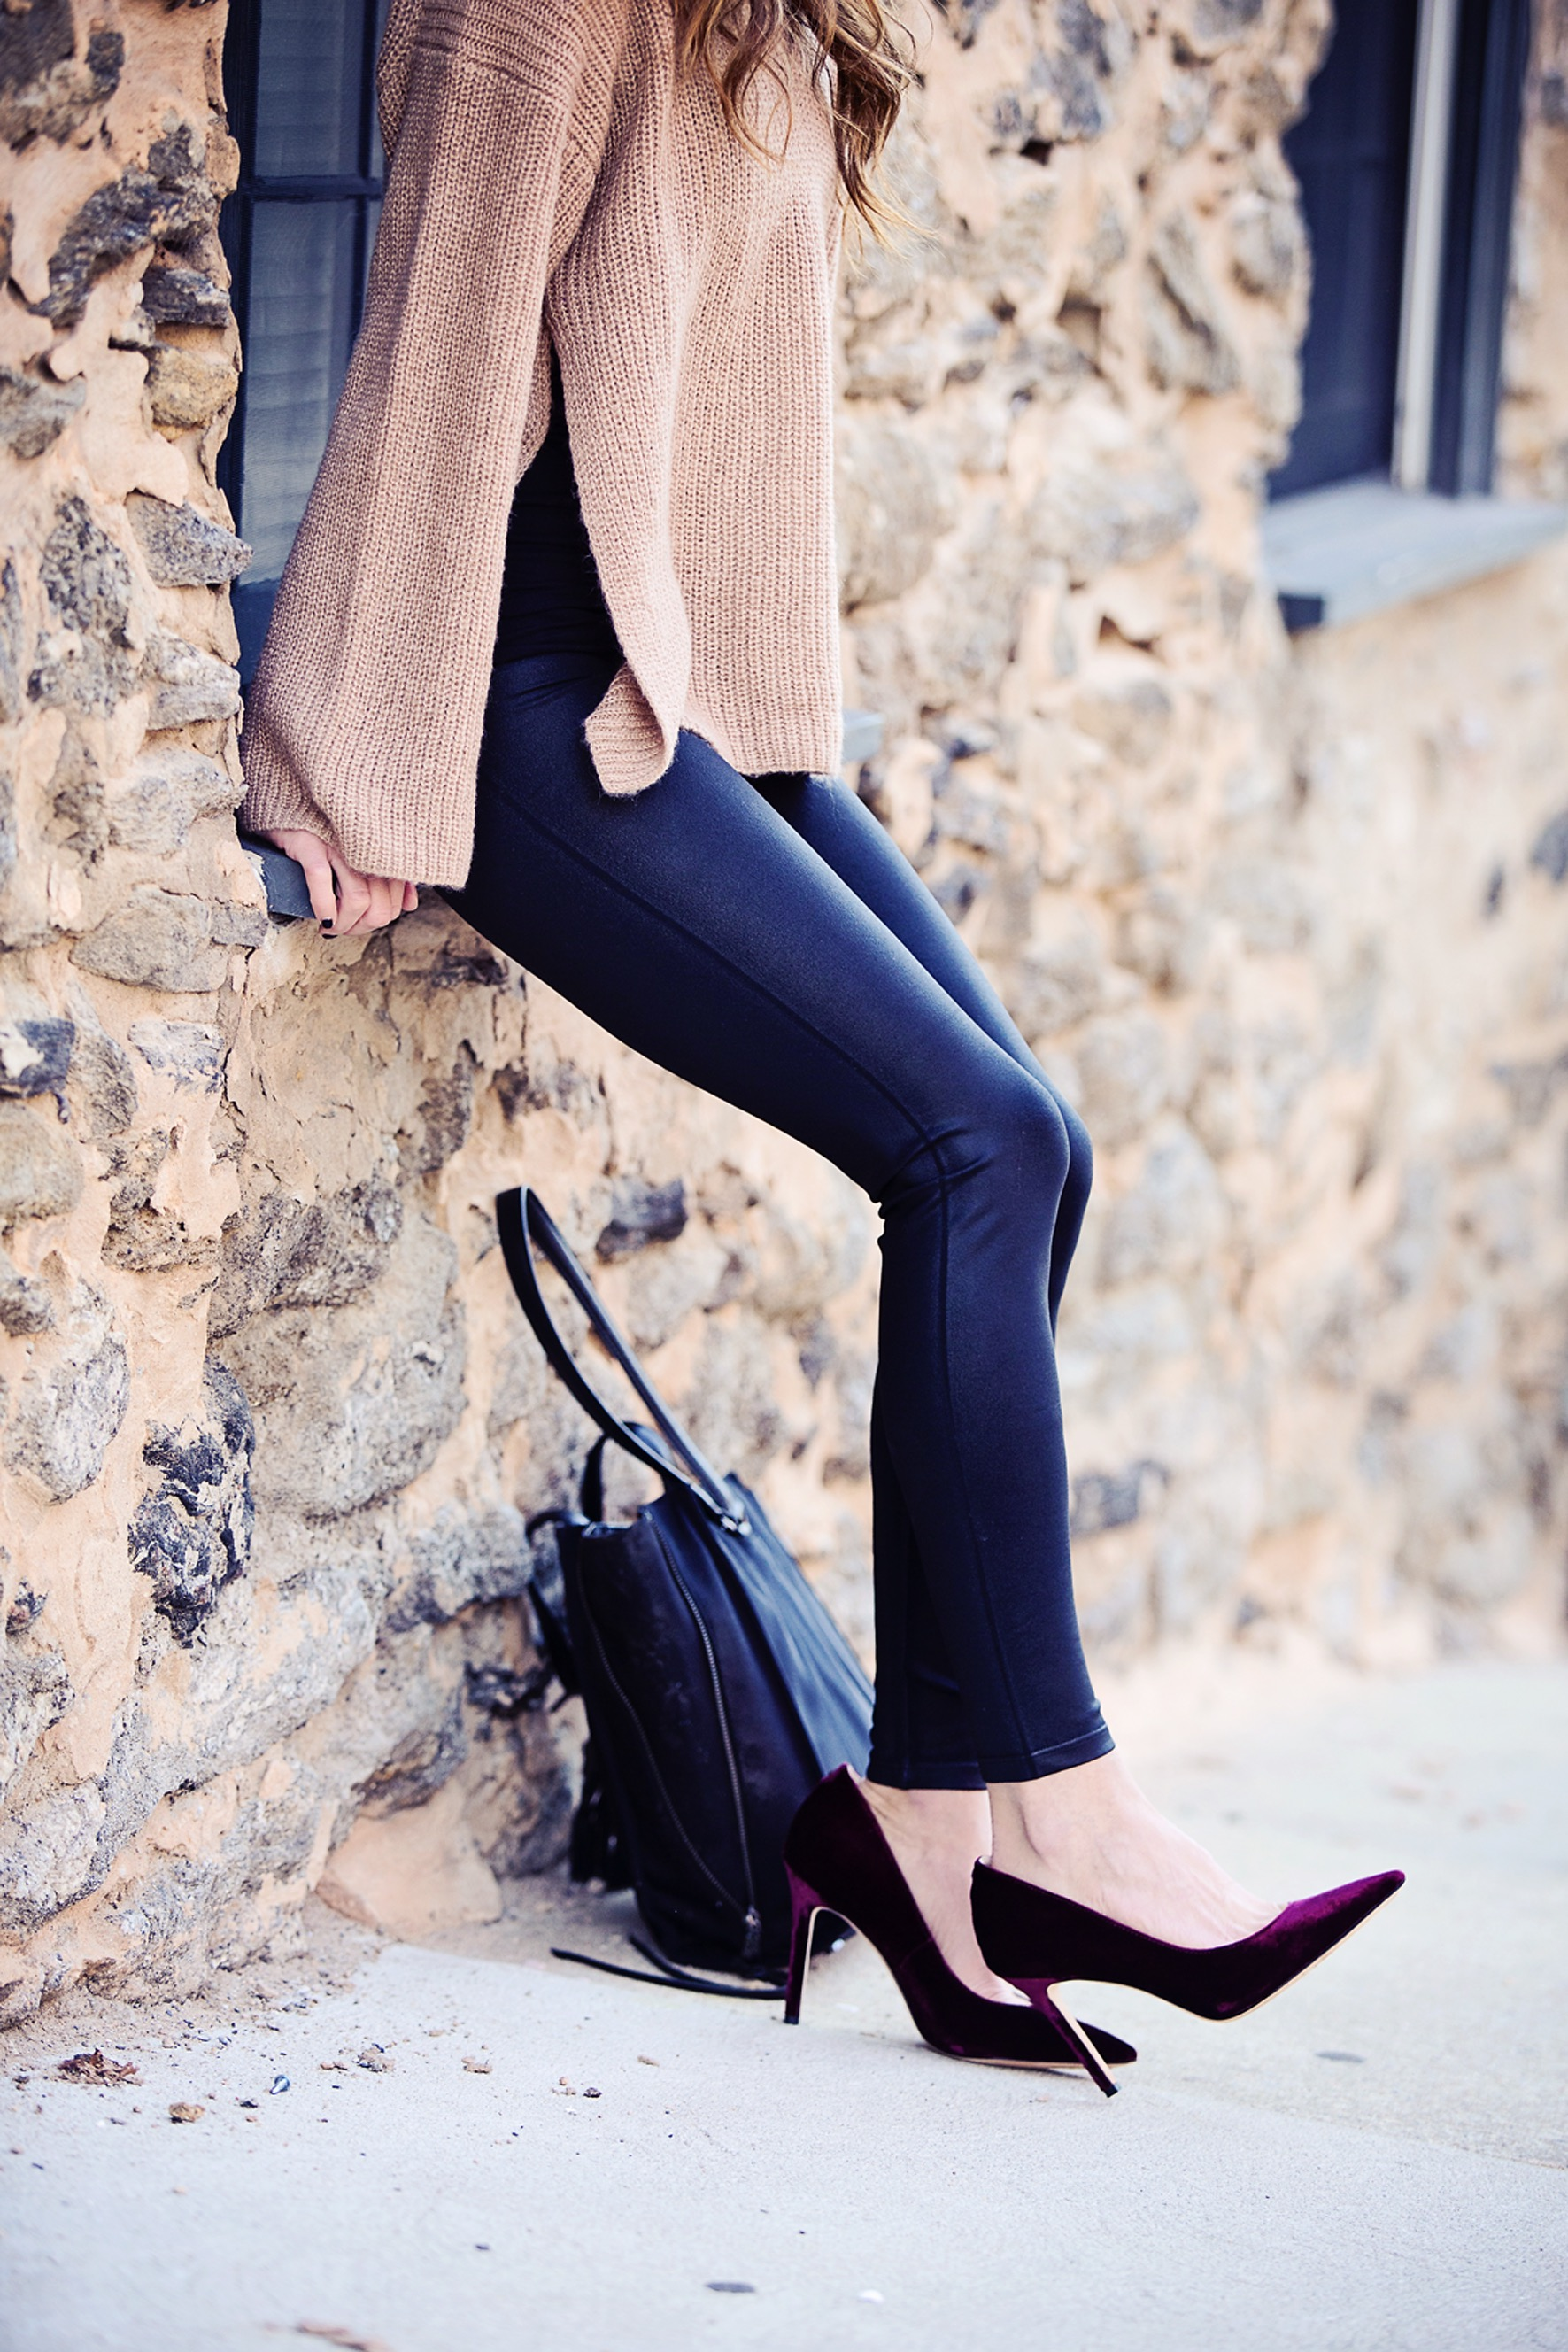 c2179a3a790 How to Wear Faux Leather Leggings - The Motherchic